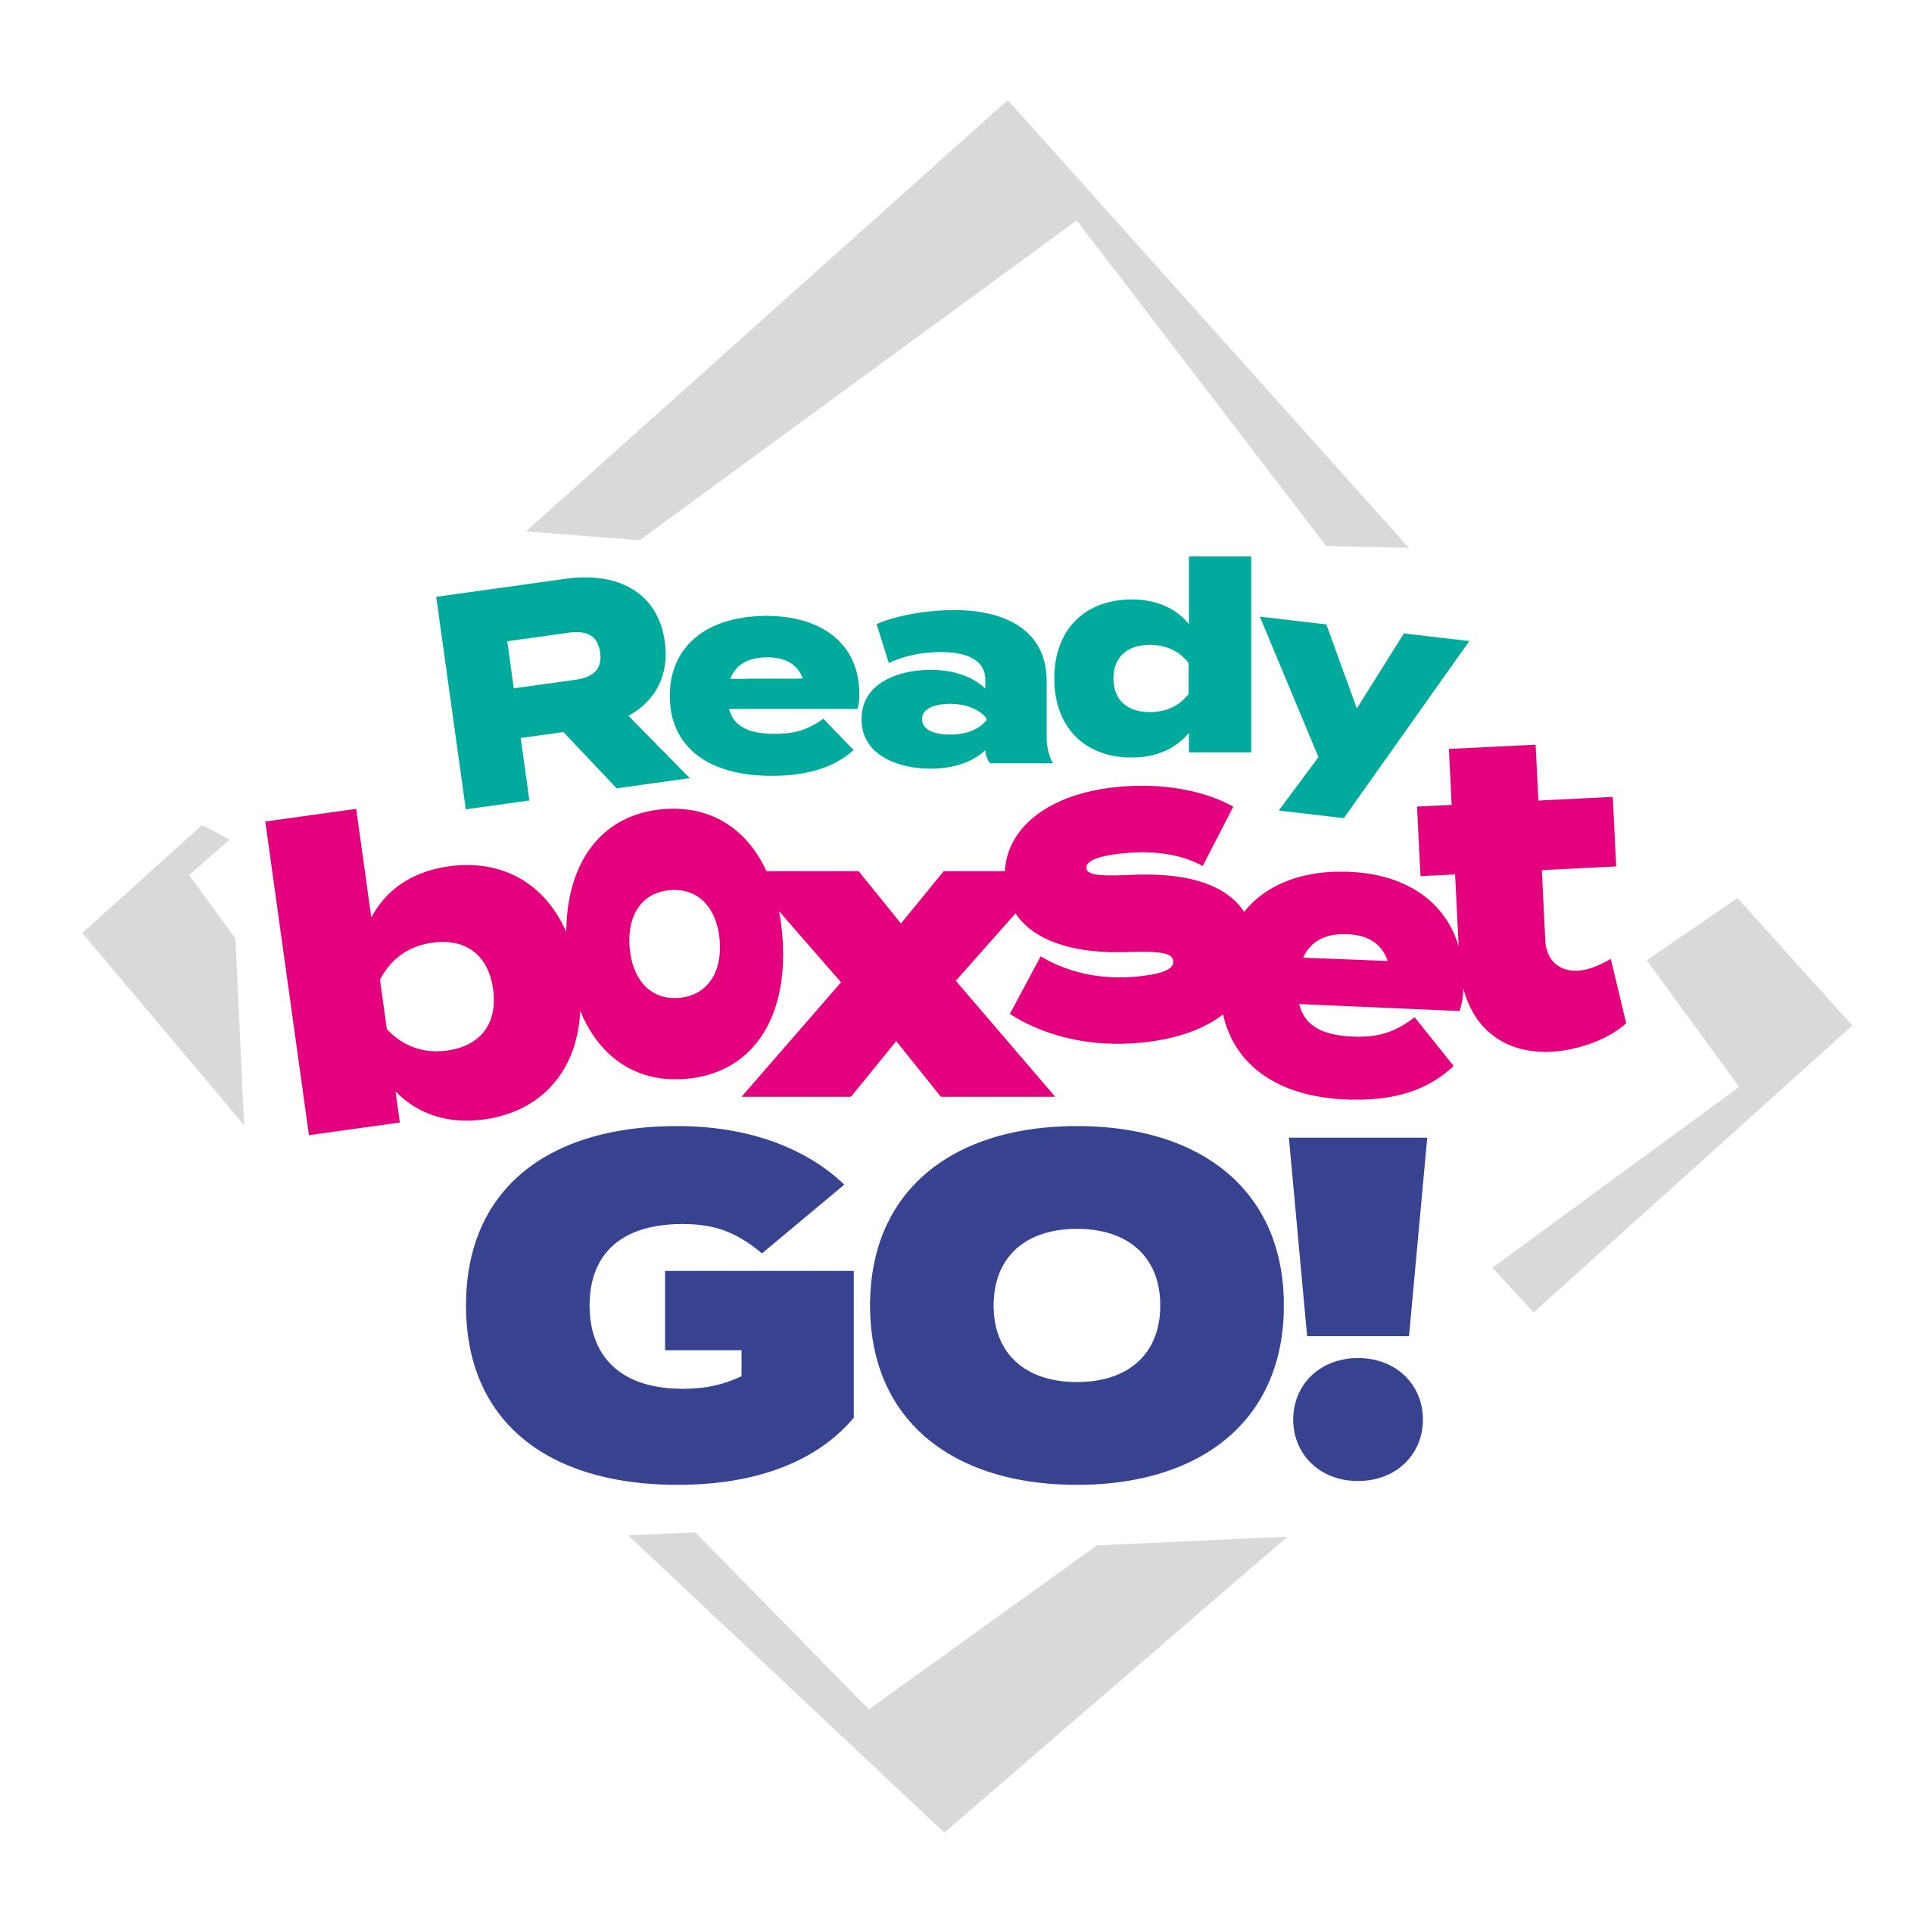 A green, pink and blue logo reading 'Ready Box Set Go.' It is surrounded by a grey square.